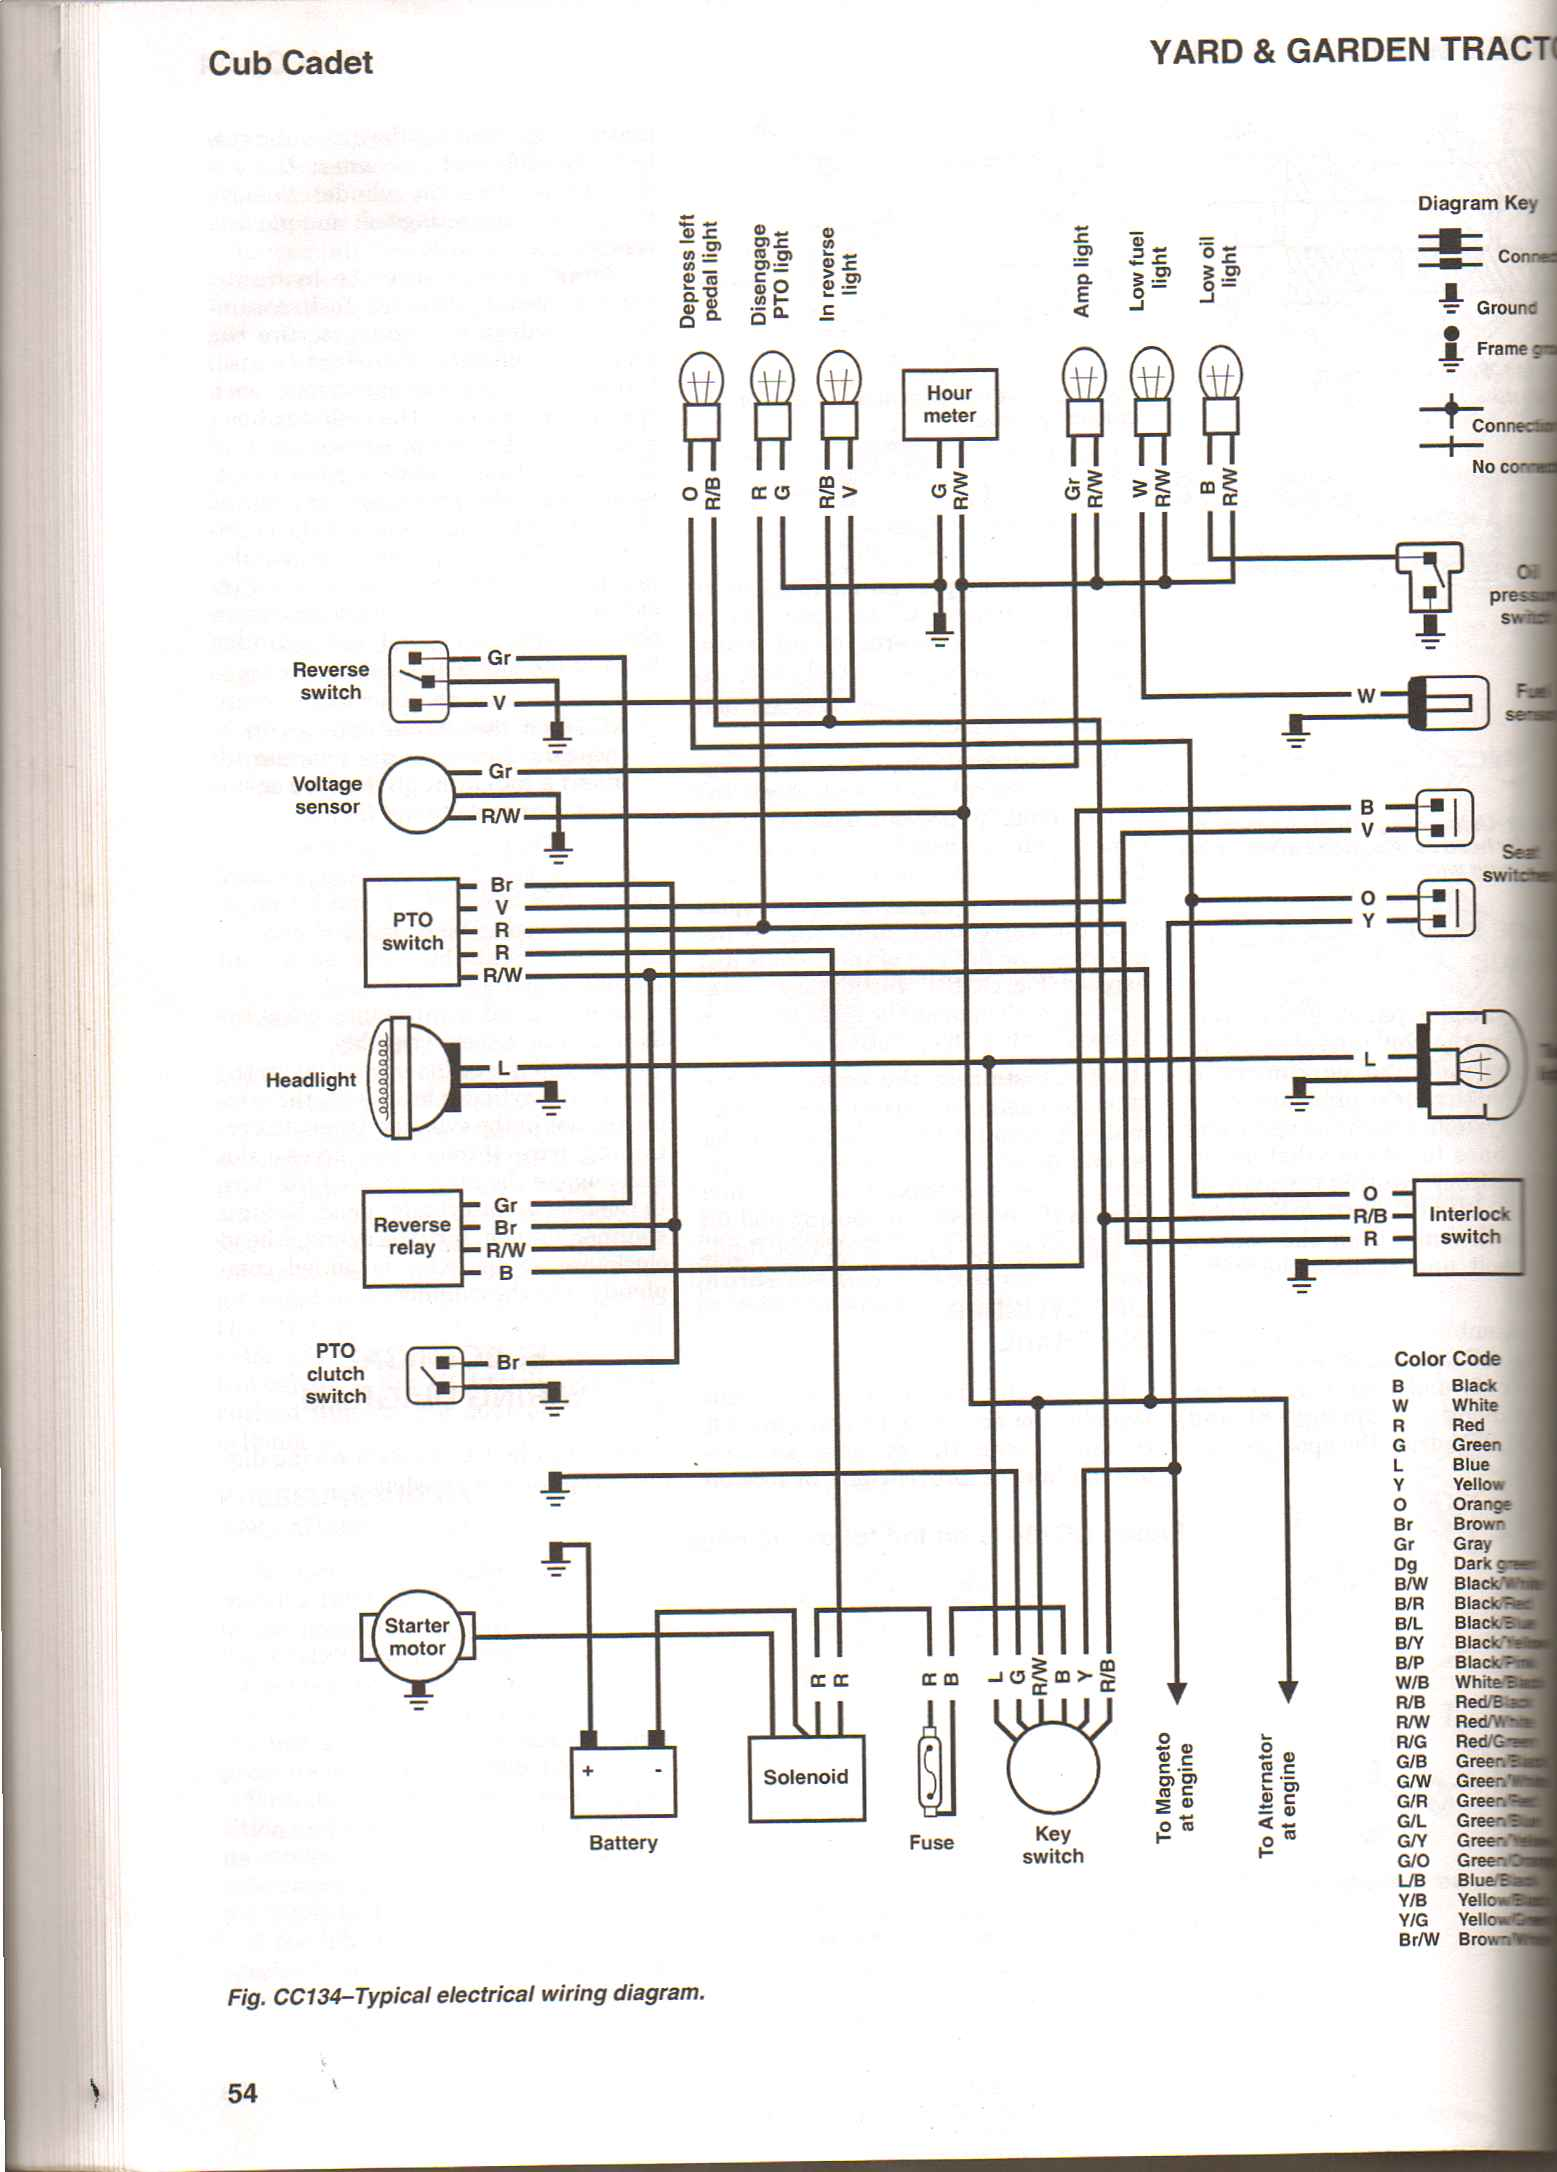 cub cadet wiring diagram for ltx 1050 cub cadet fuse box wiring diagram e6  cub cadet fuse box wiring diagram e6